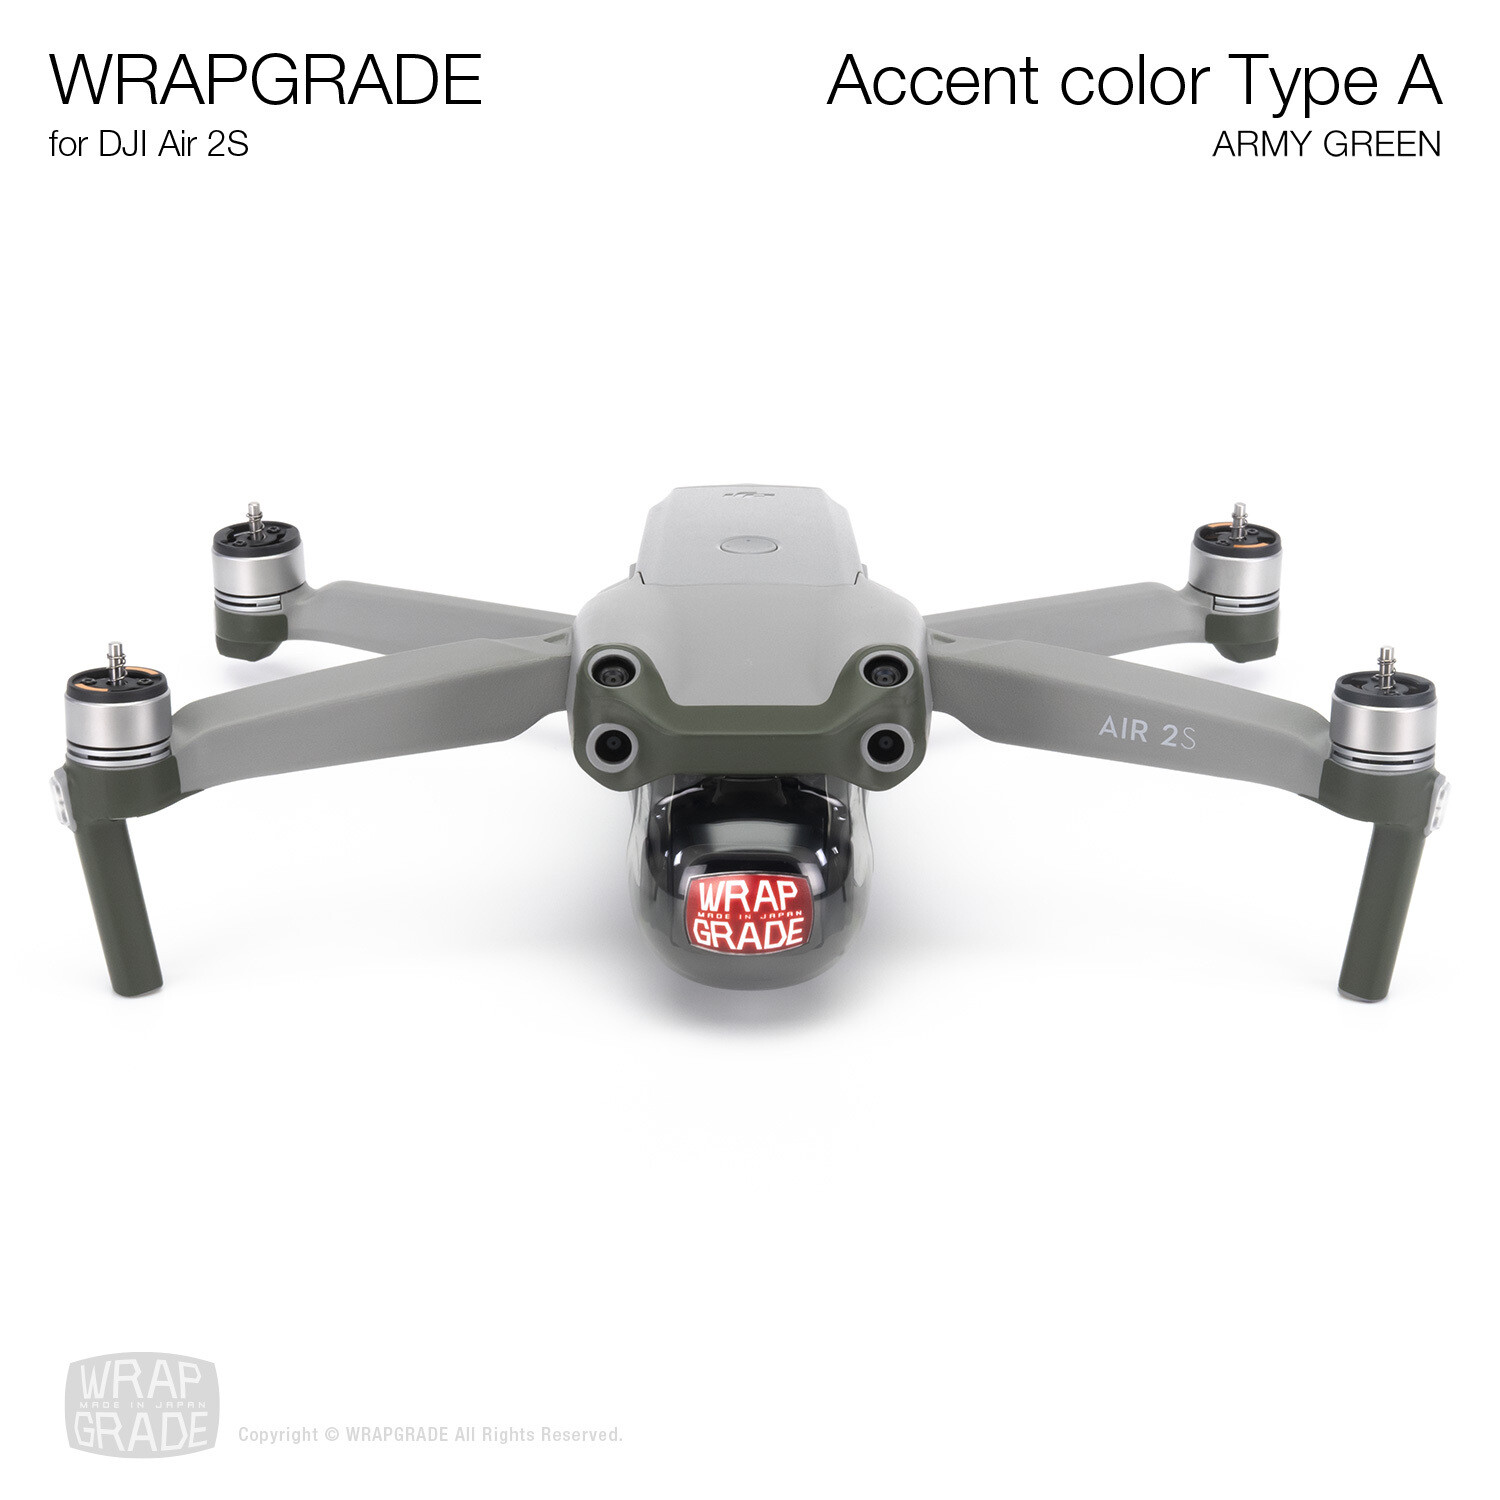 Wrapgrade Skin for DJI Air 2S   Accent Color A (ARMY GREEN)